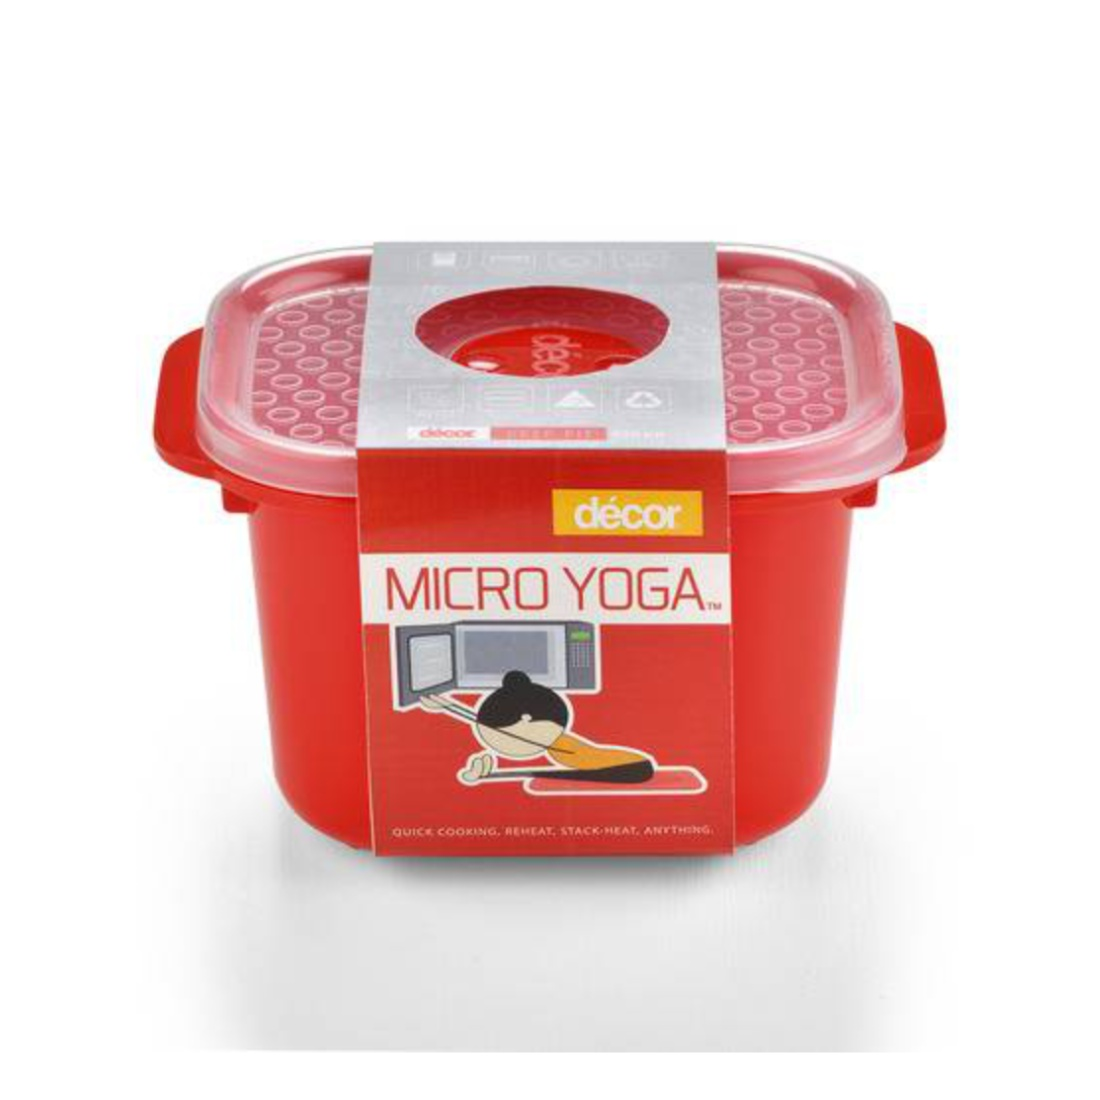 Micro Yoga Oblong 650ML Plastic Containers by Decor